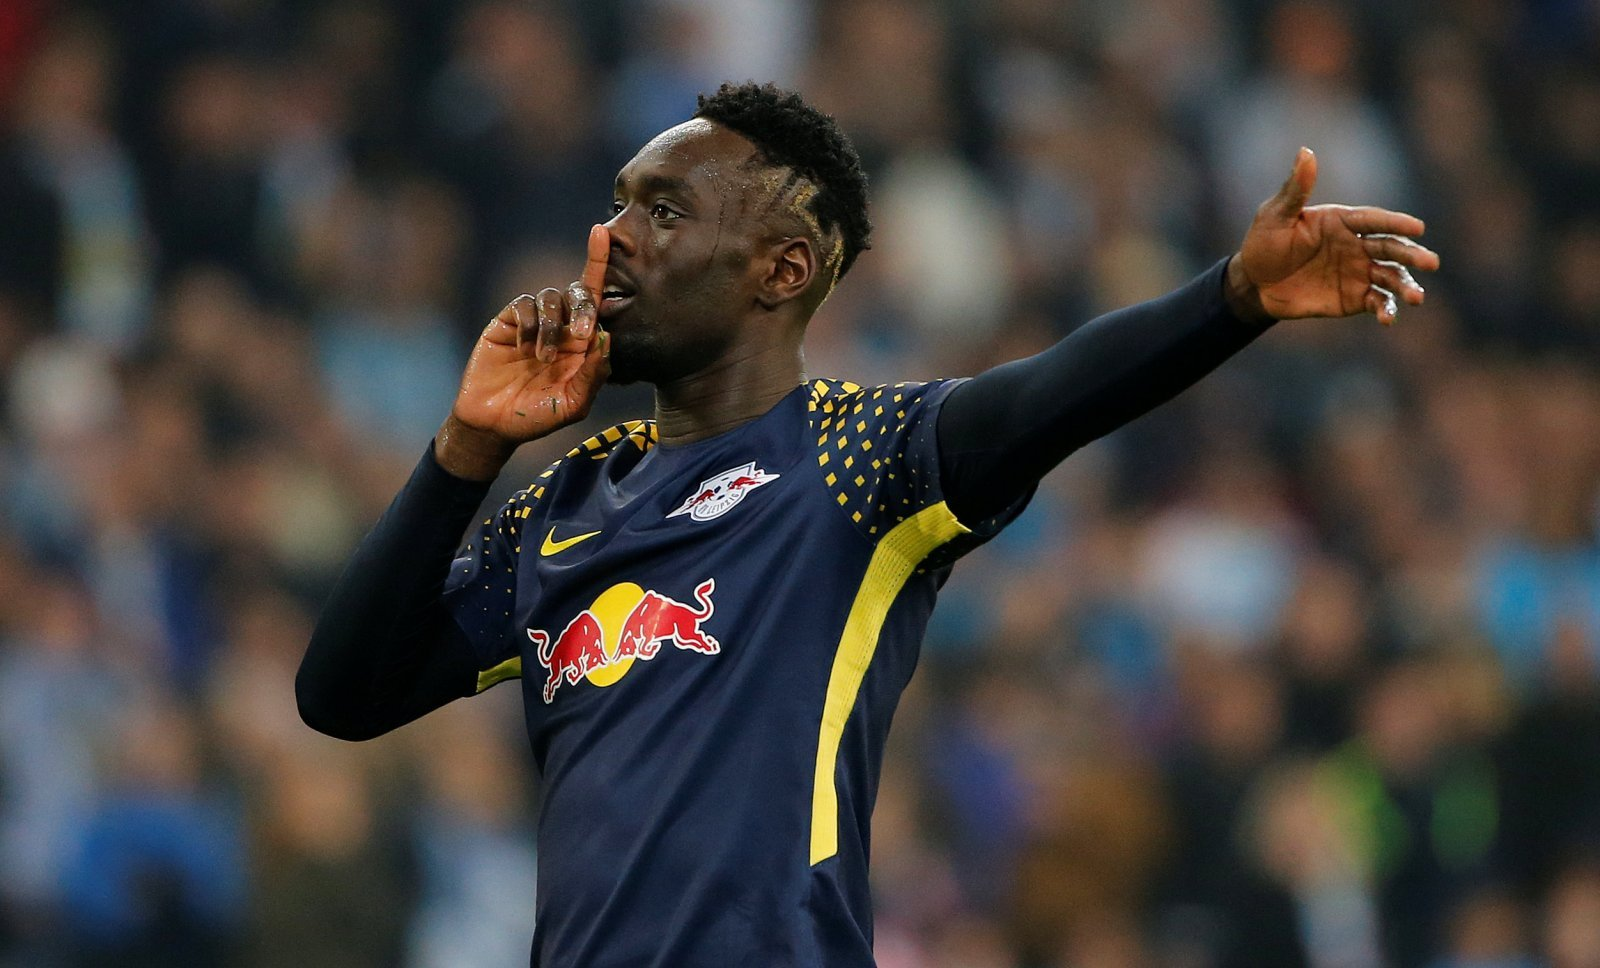 Jean-Kevin Augustin to Southampton a pipe dream as Saints face drop